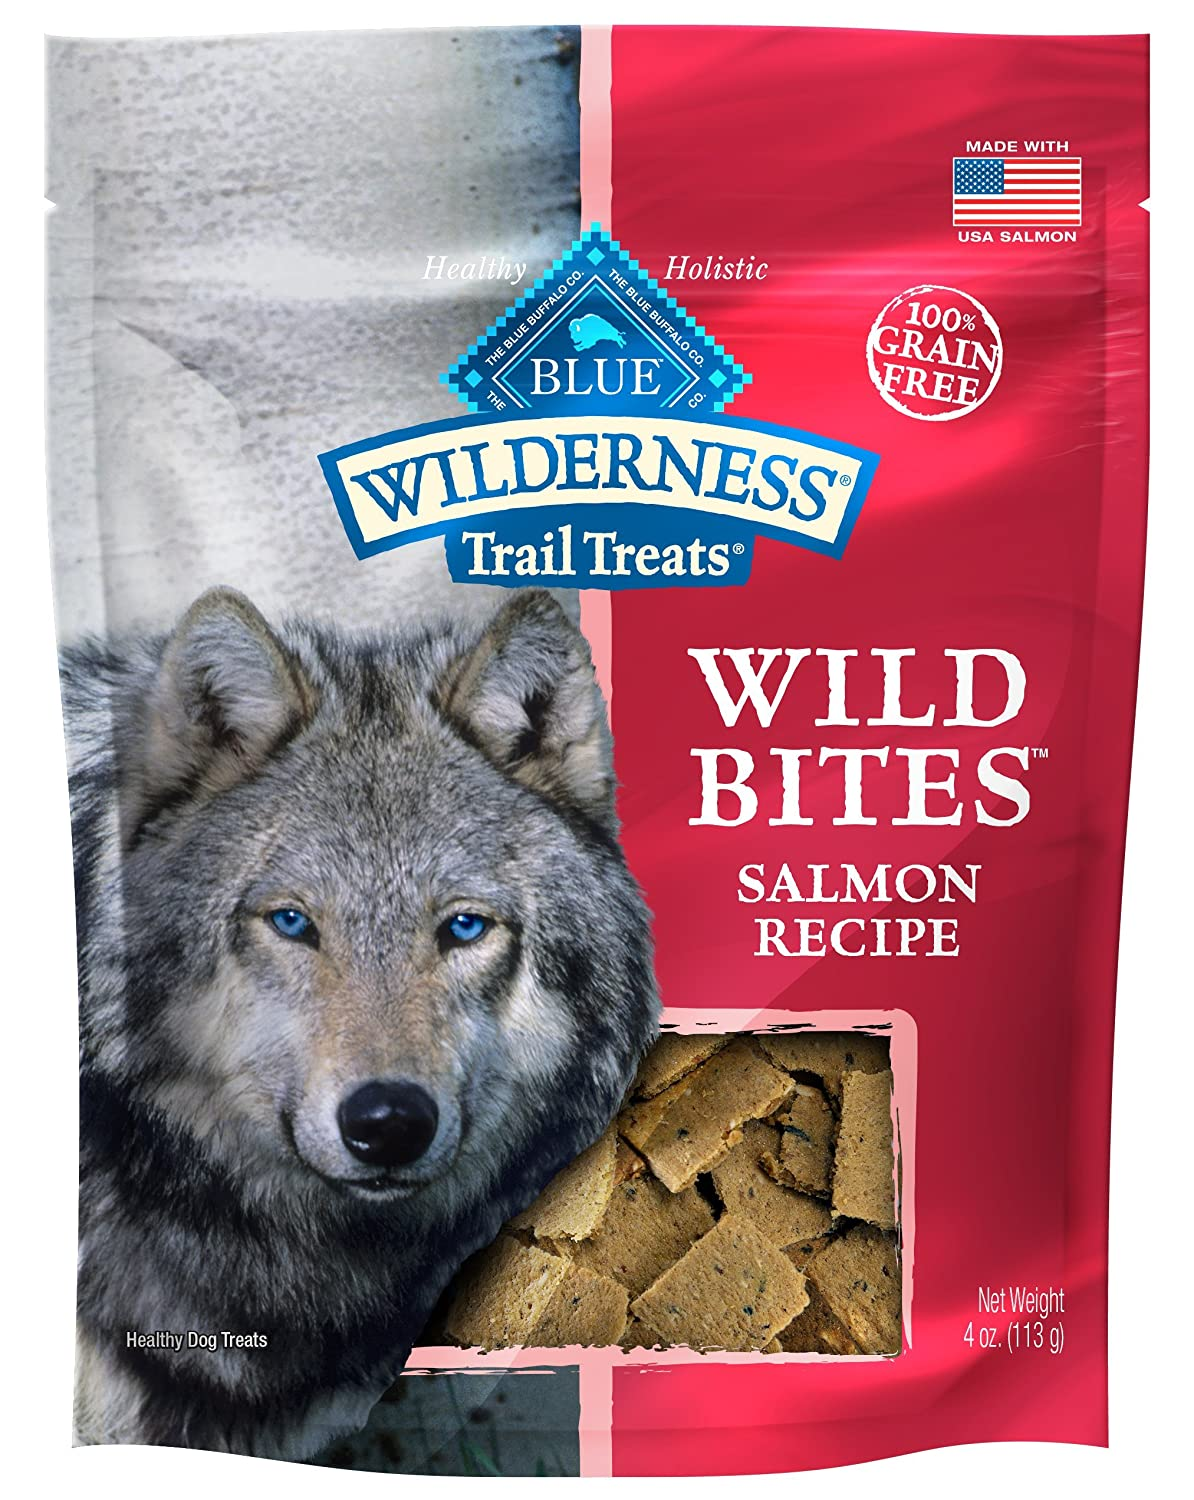 Blue Wilderness Grain-Free Wild Bites Salmon Treats, 4 Oz 8 Pack